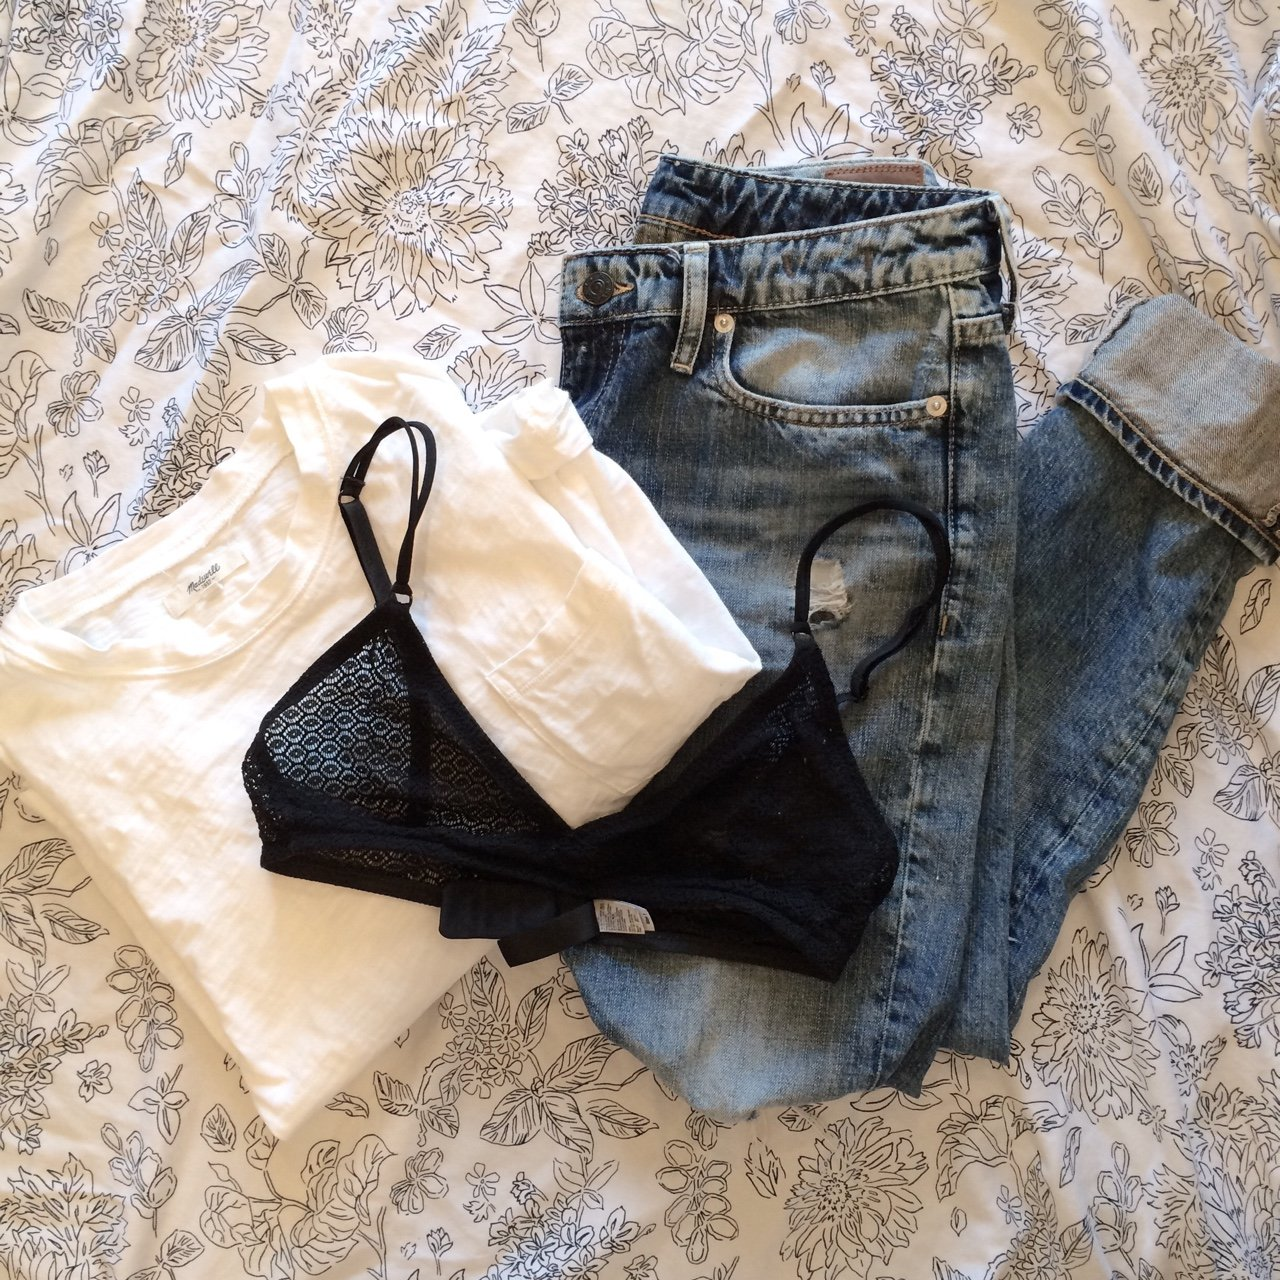 de2454d8cbb Geo Lace Bralette from American Apparel in black. Excellent - Depop